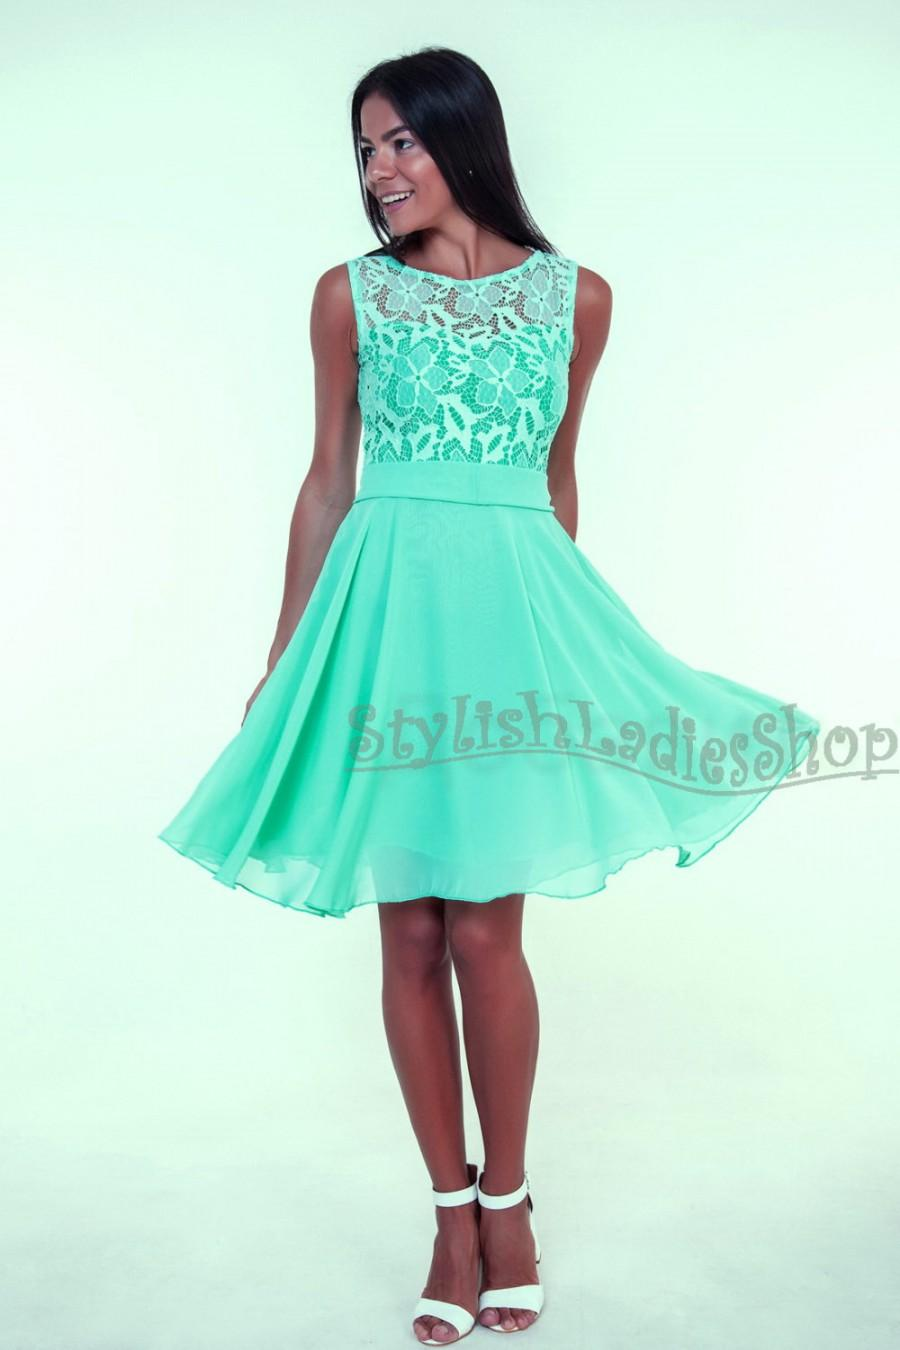 You searched for: mint dress! Etsy is the home to thousands of handmade, vintage, and one-of-a-kind products and gifts related to your search. No matter what you're looking for or where you are in the world, our global marketplace of sellers can help you find unique and affordable options. Let's get started!